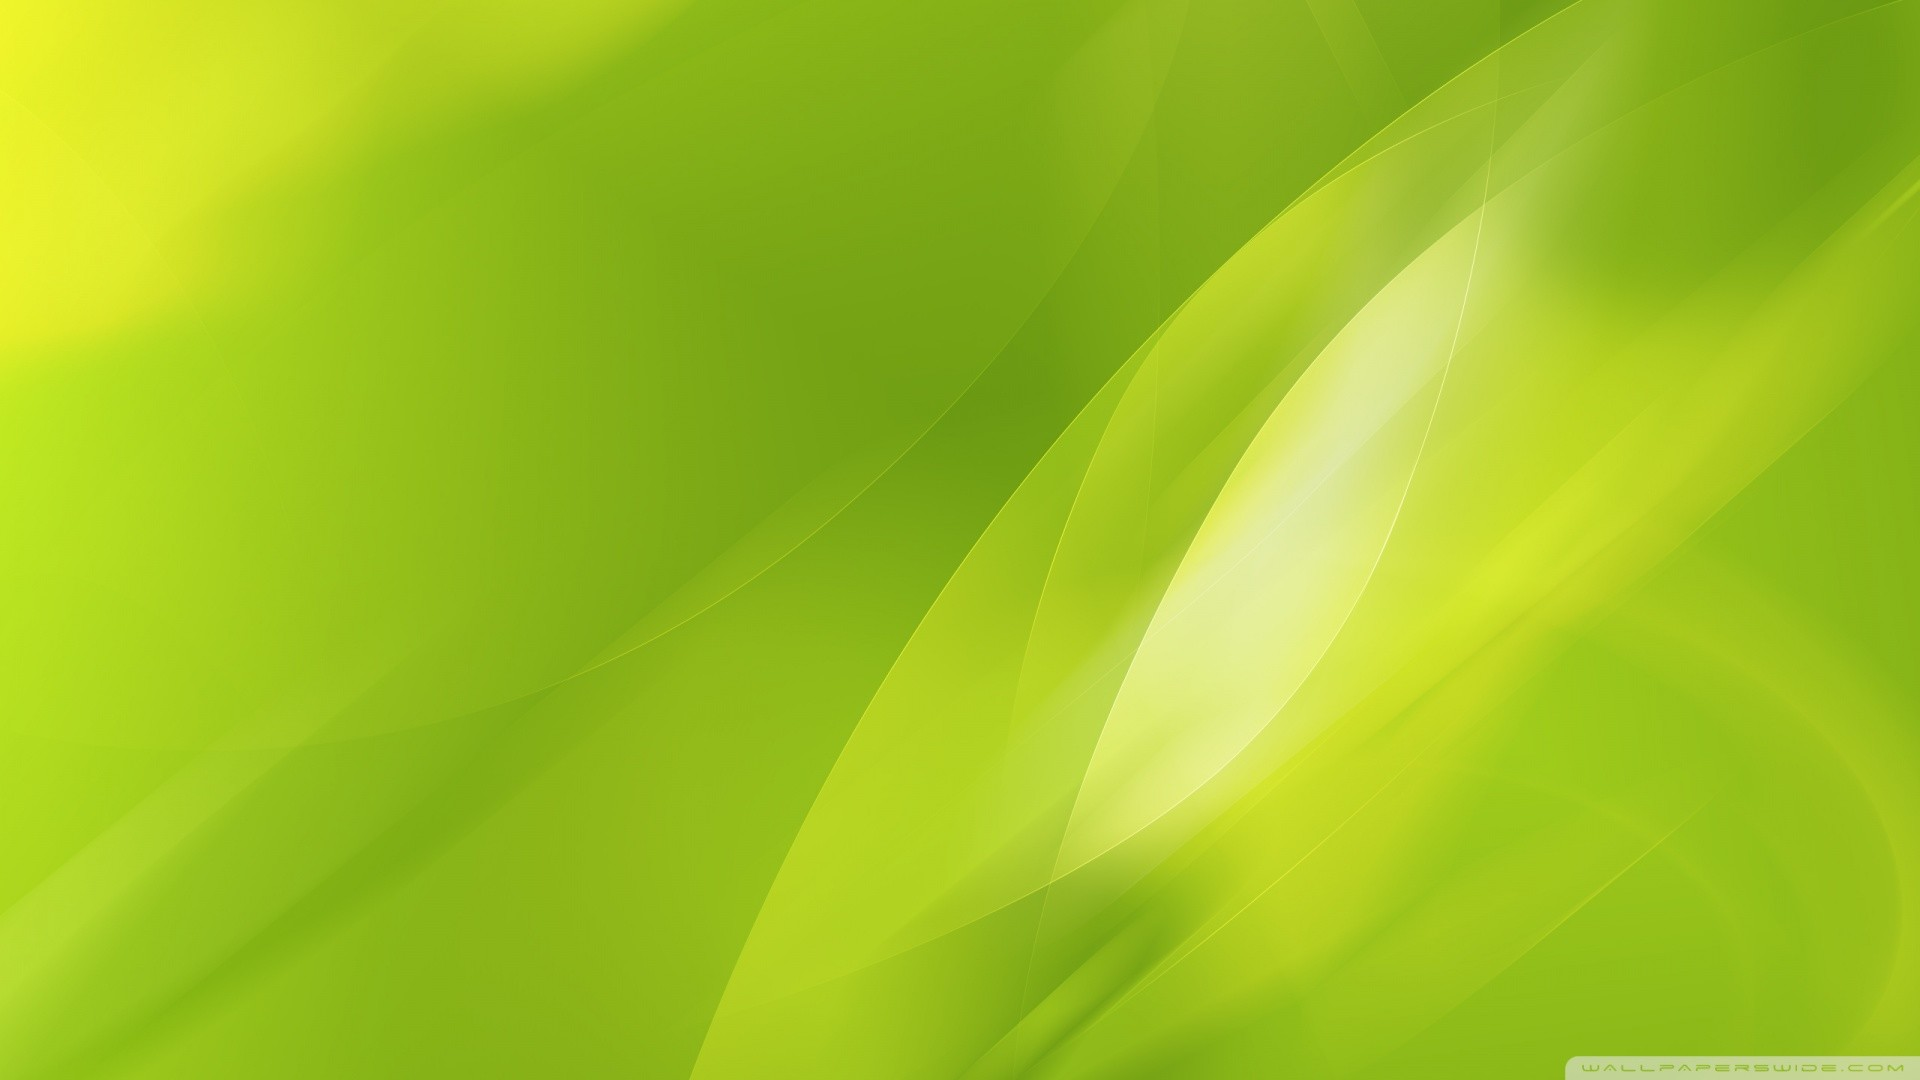 1920x1080 Neon Green Wallpaper, Full HD 1080p, Best HD Neon Green Images, NMgnCP